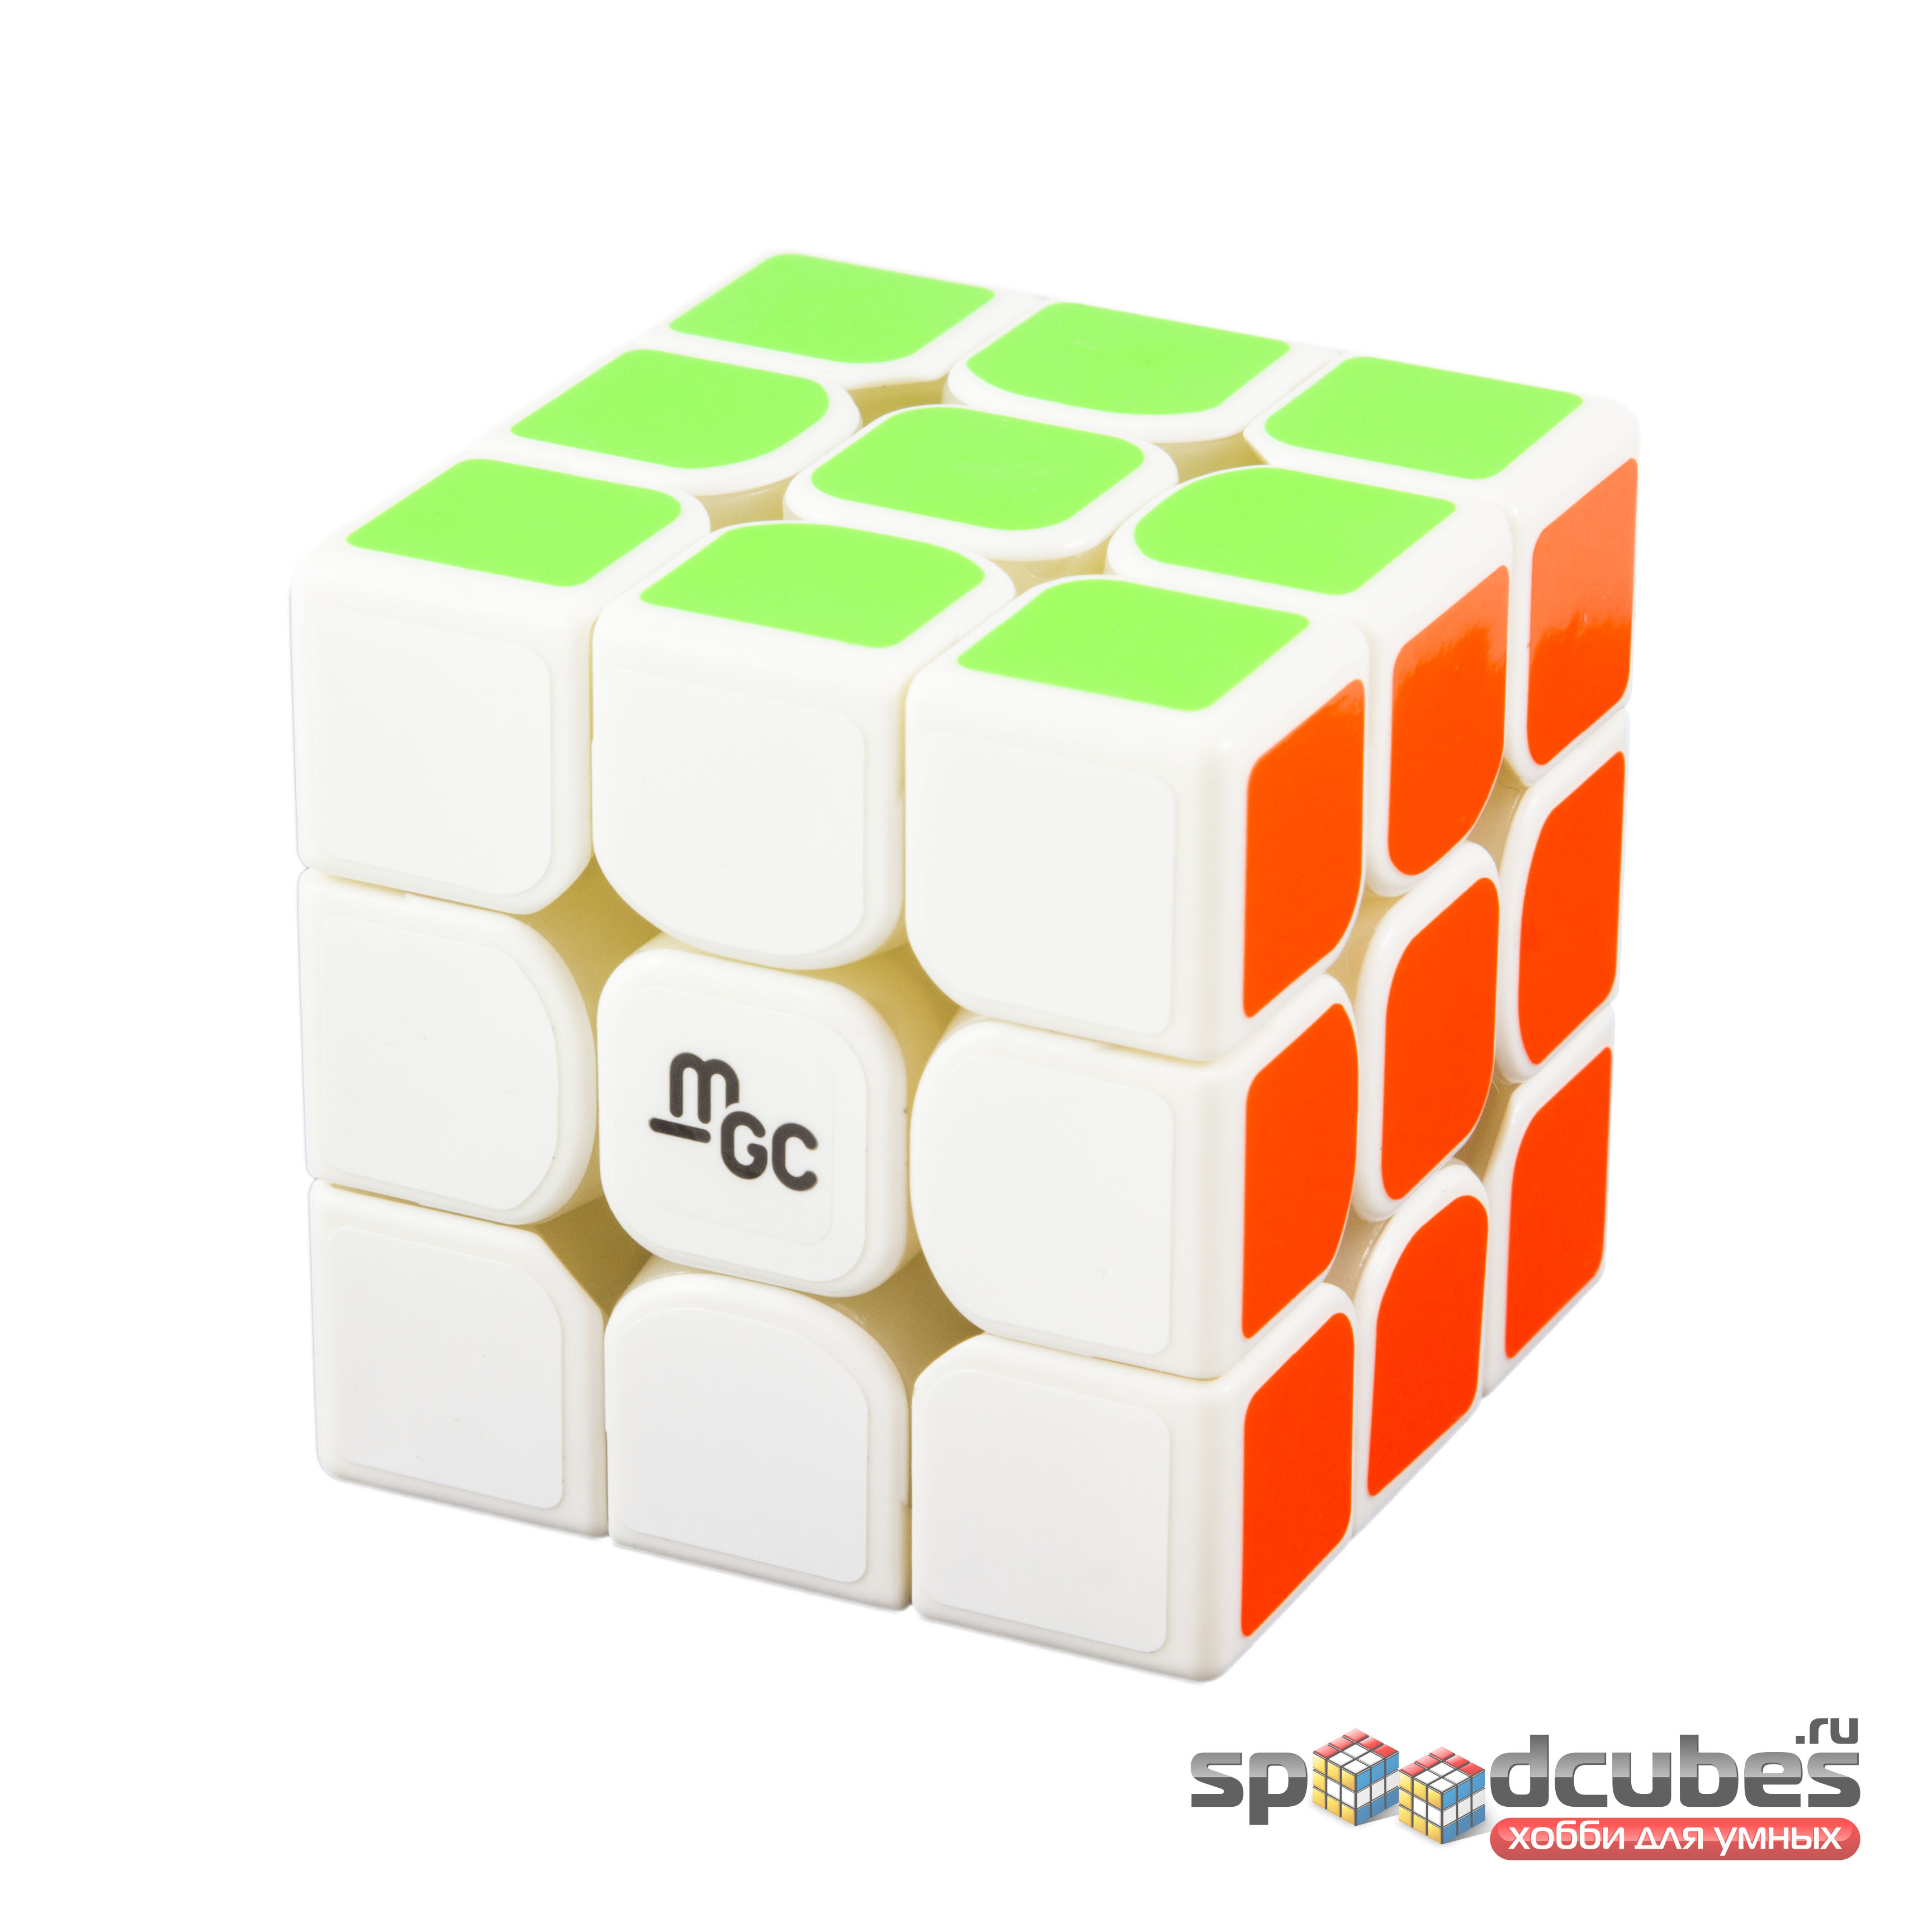 Yj Mgc 3x3x3 Magnetic 3 White